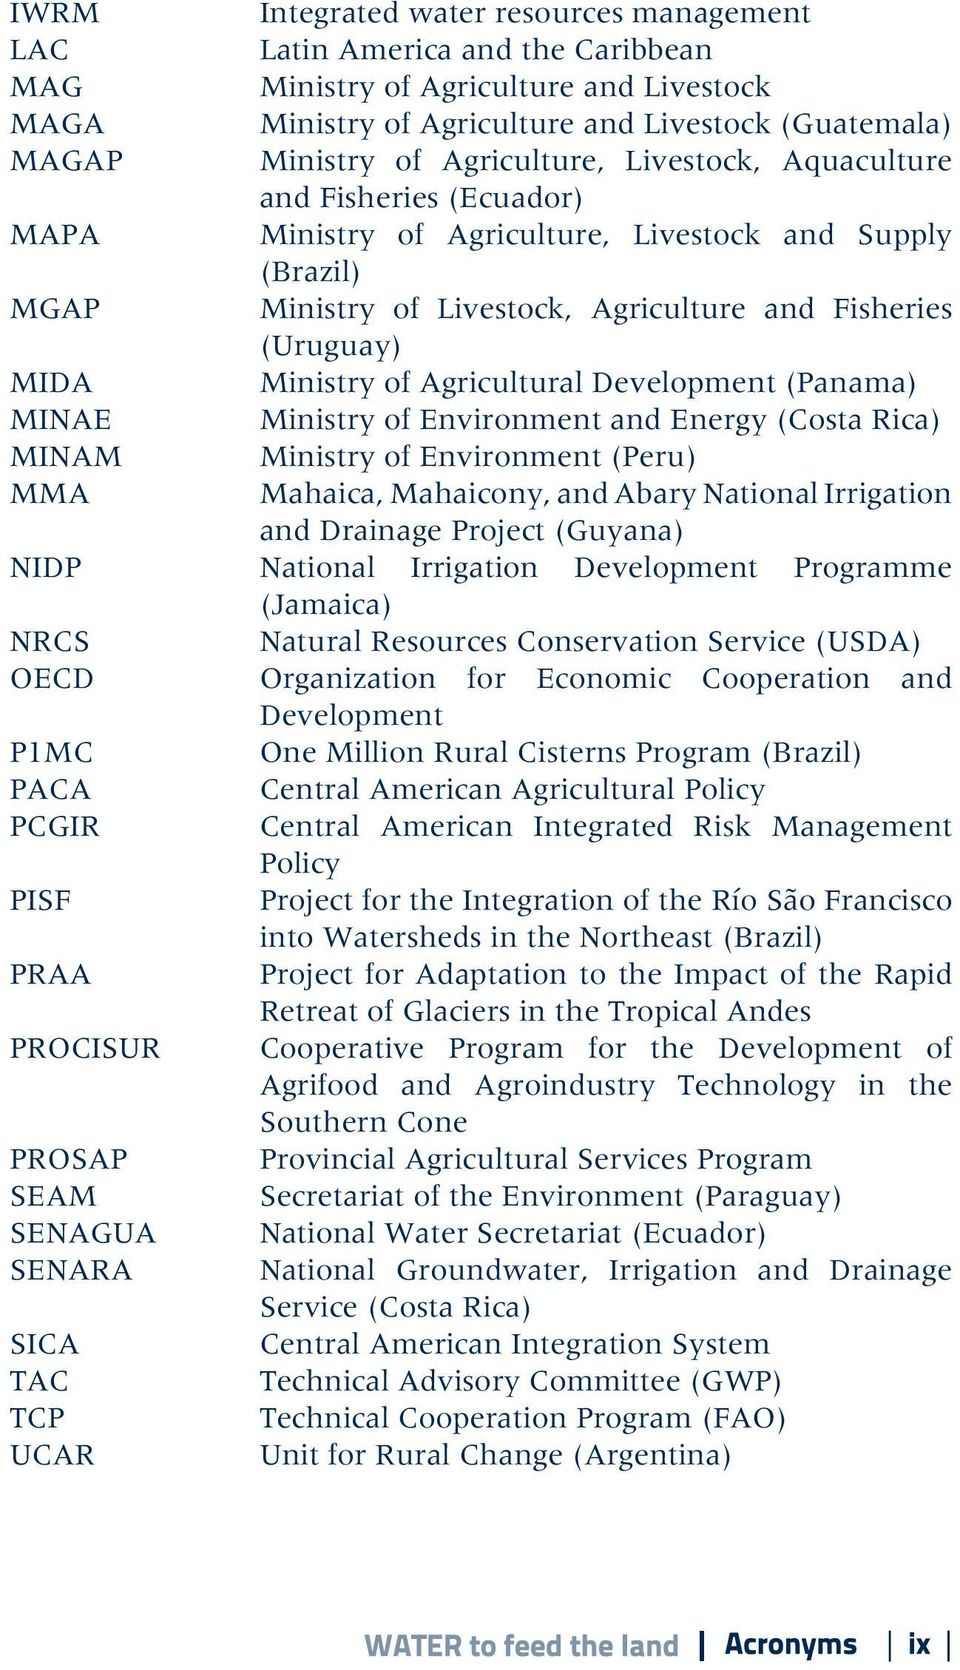 of Agricultural Development (Panama) MINAE Ministry of Environment and Energy (Costa Rica) MINAM Ministry of Environment (Peru) MMA Mahaica, Mahaicony, and Abary National Irrigation and Drainage